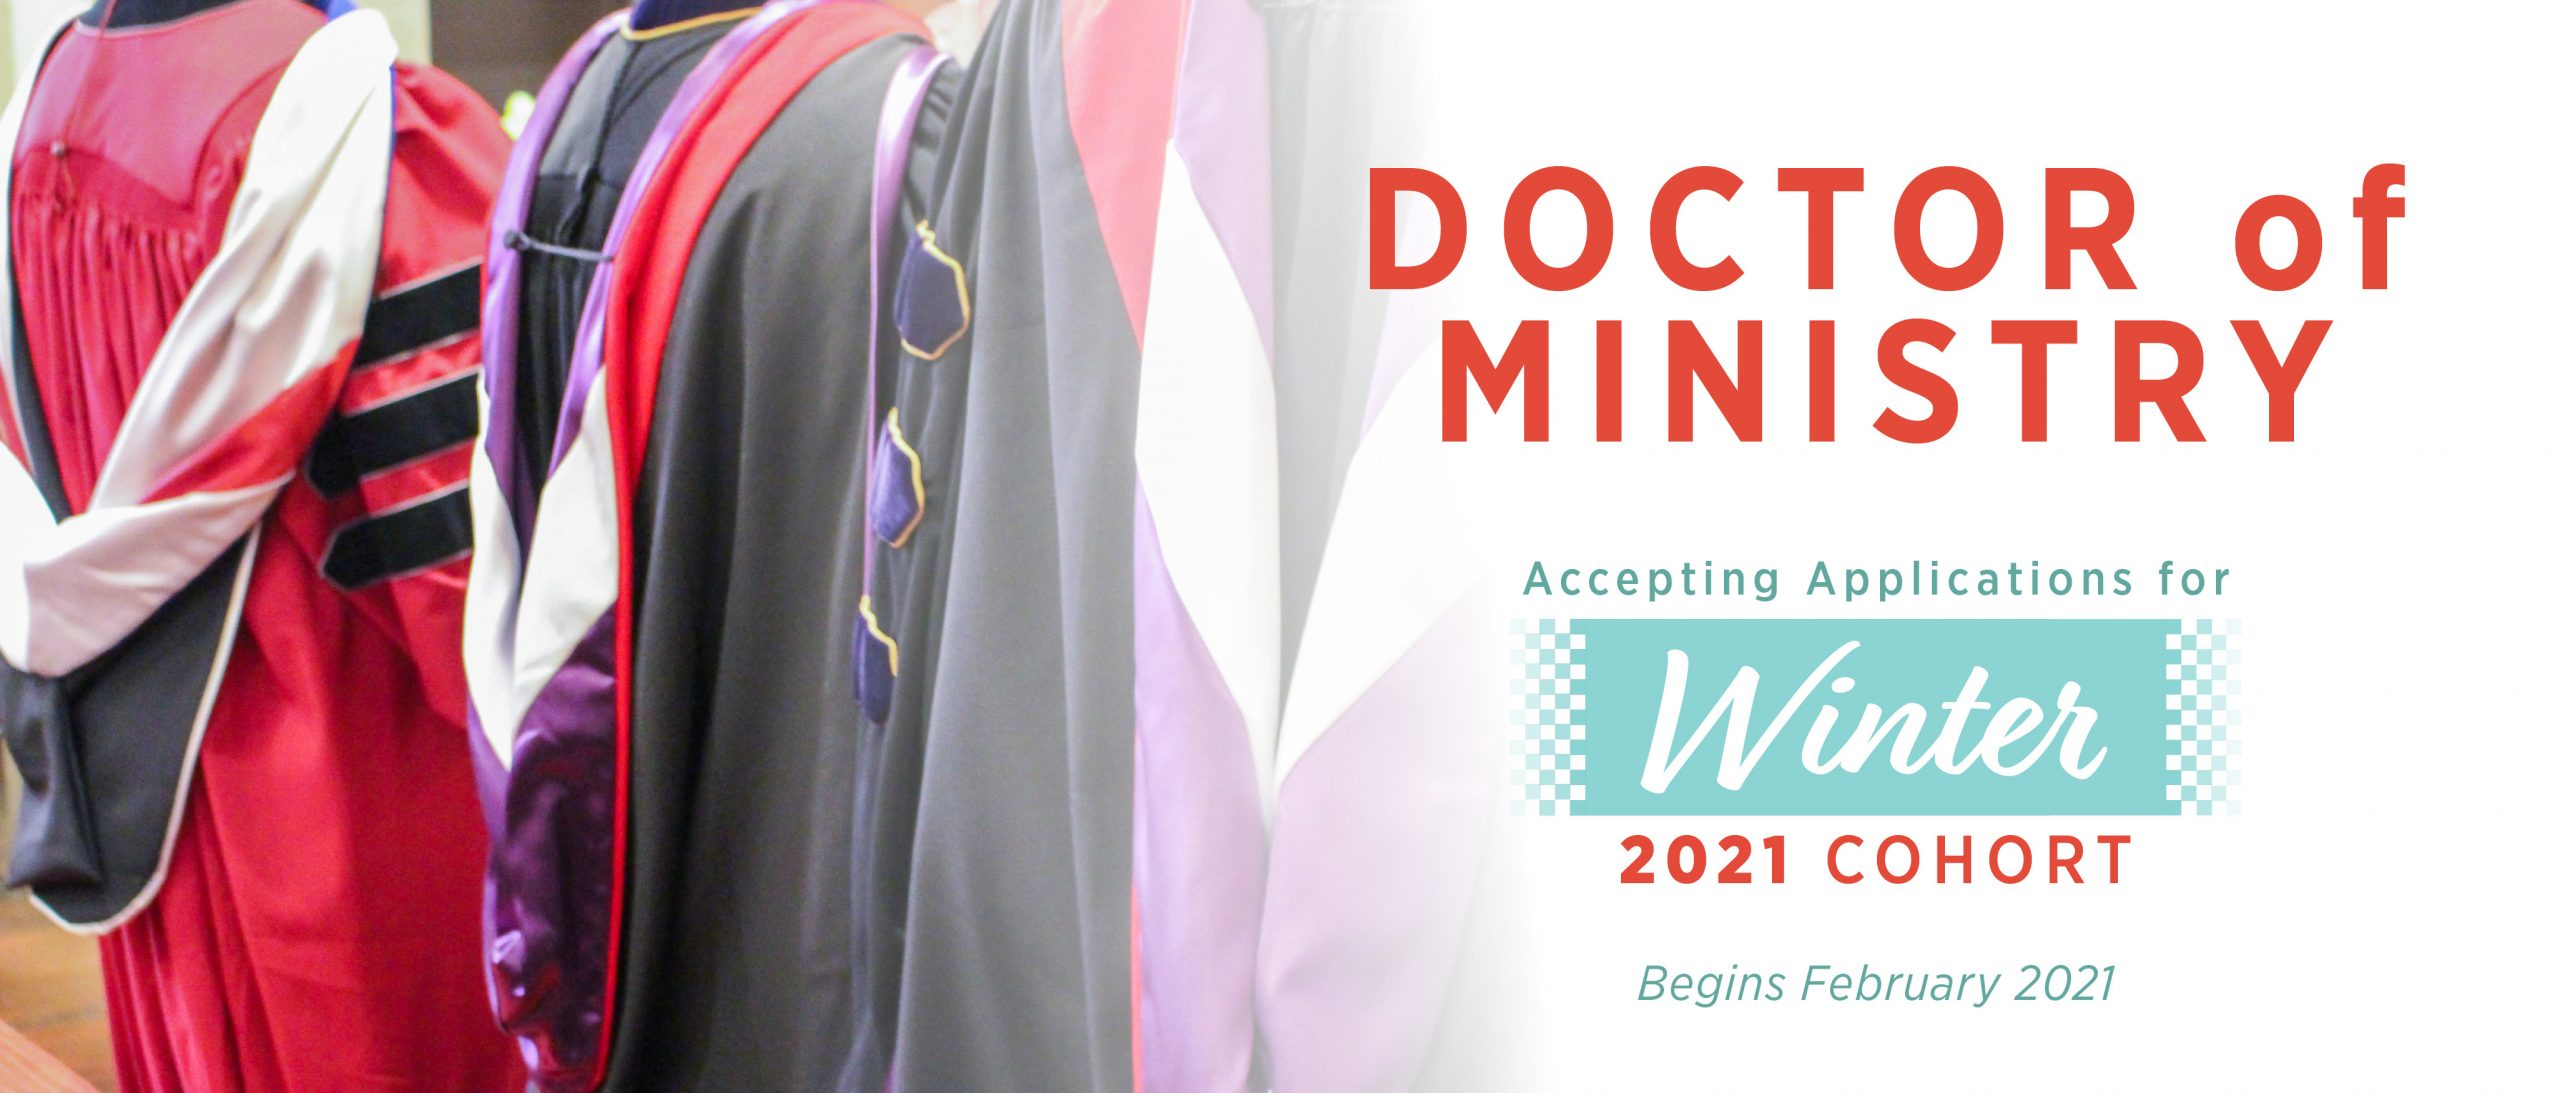 Permalink to:Doctor of Ministry